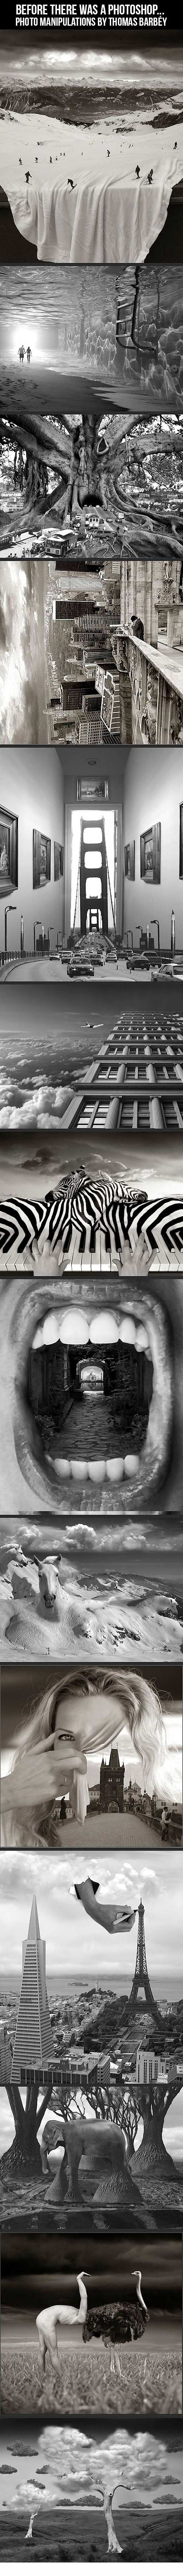 cool-photo-manipulations-Thomas-Barbey-photoshop